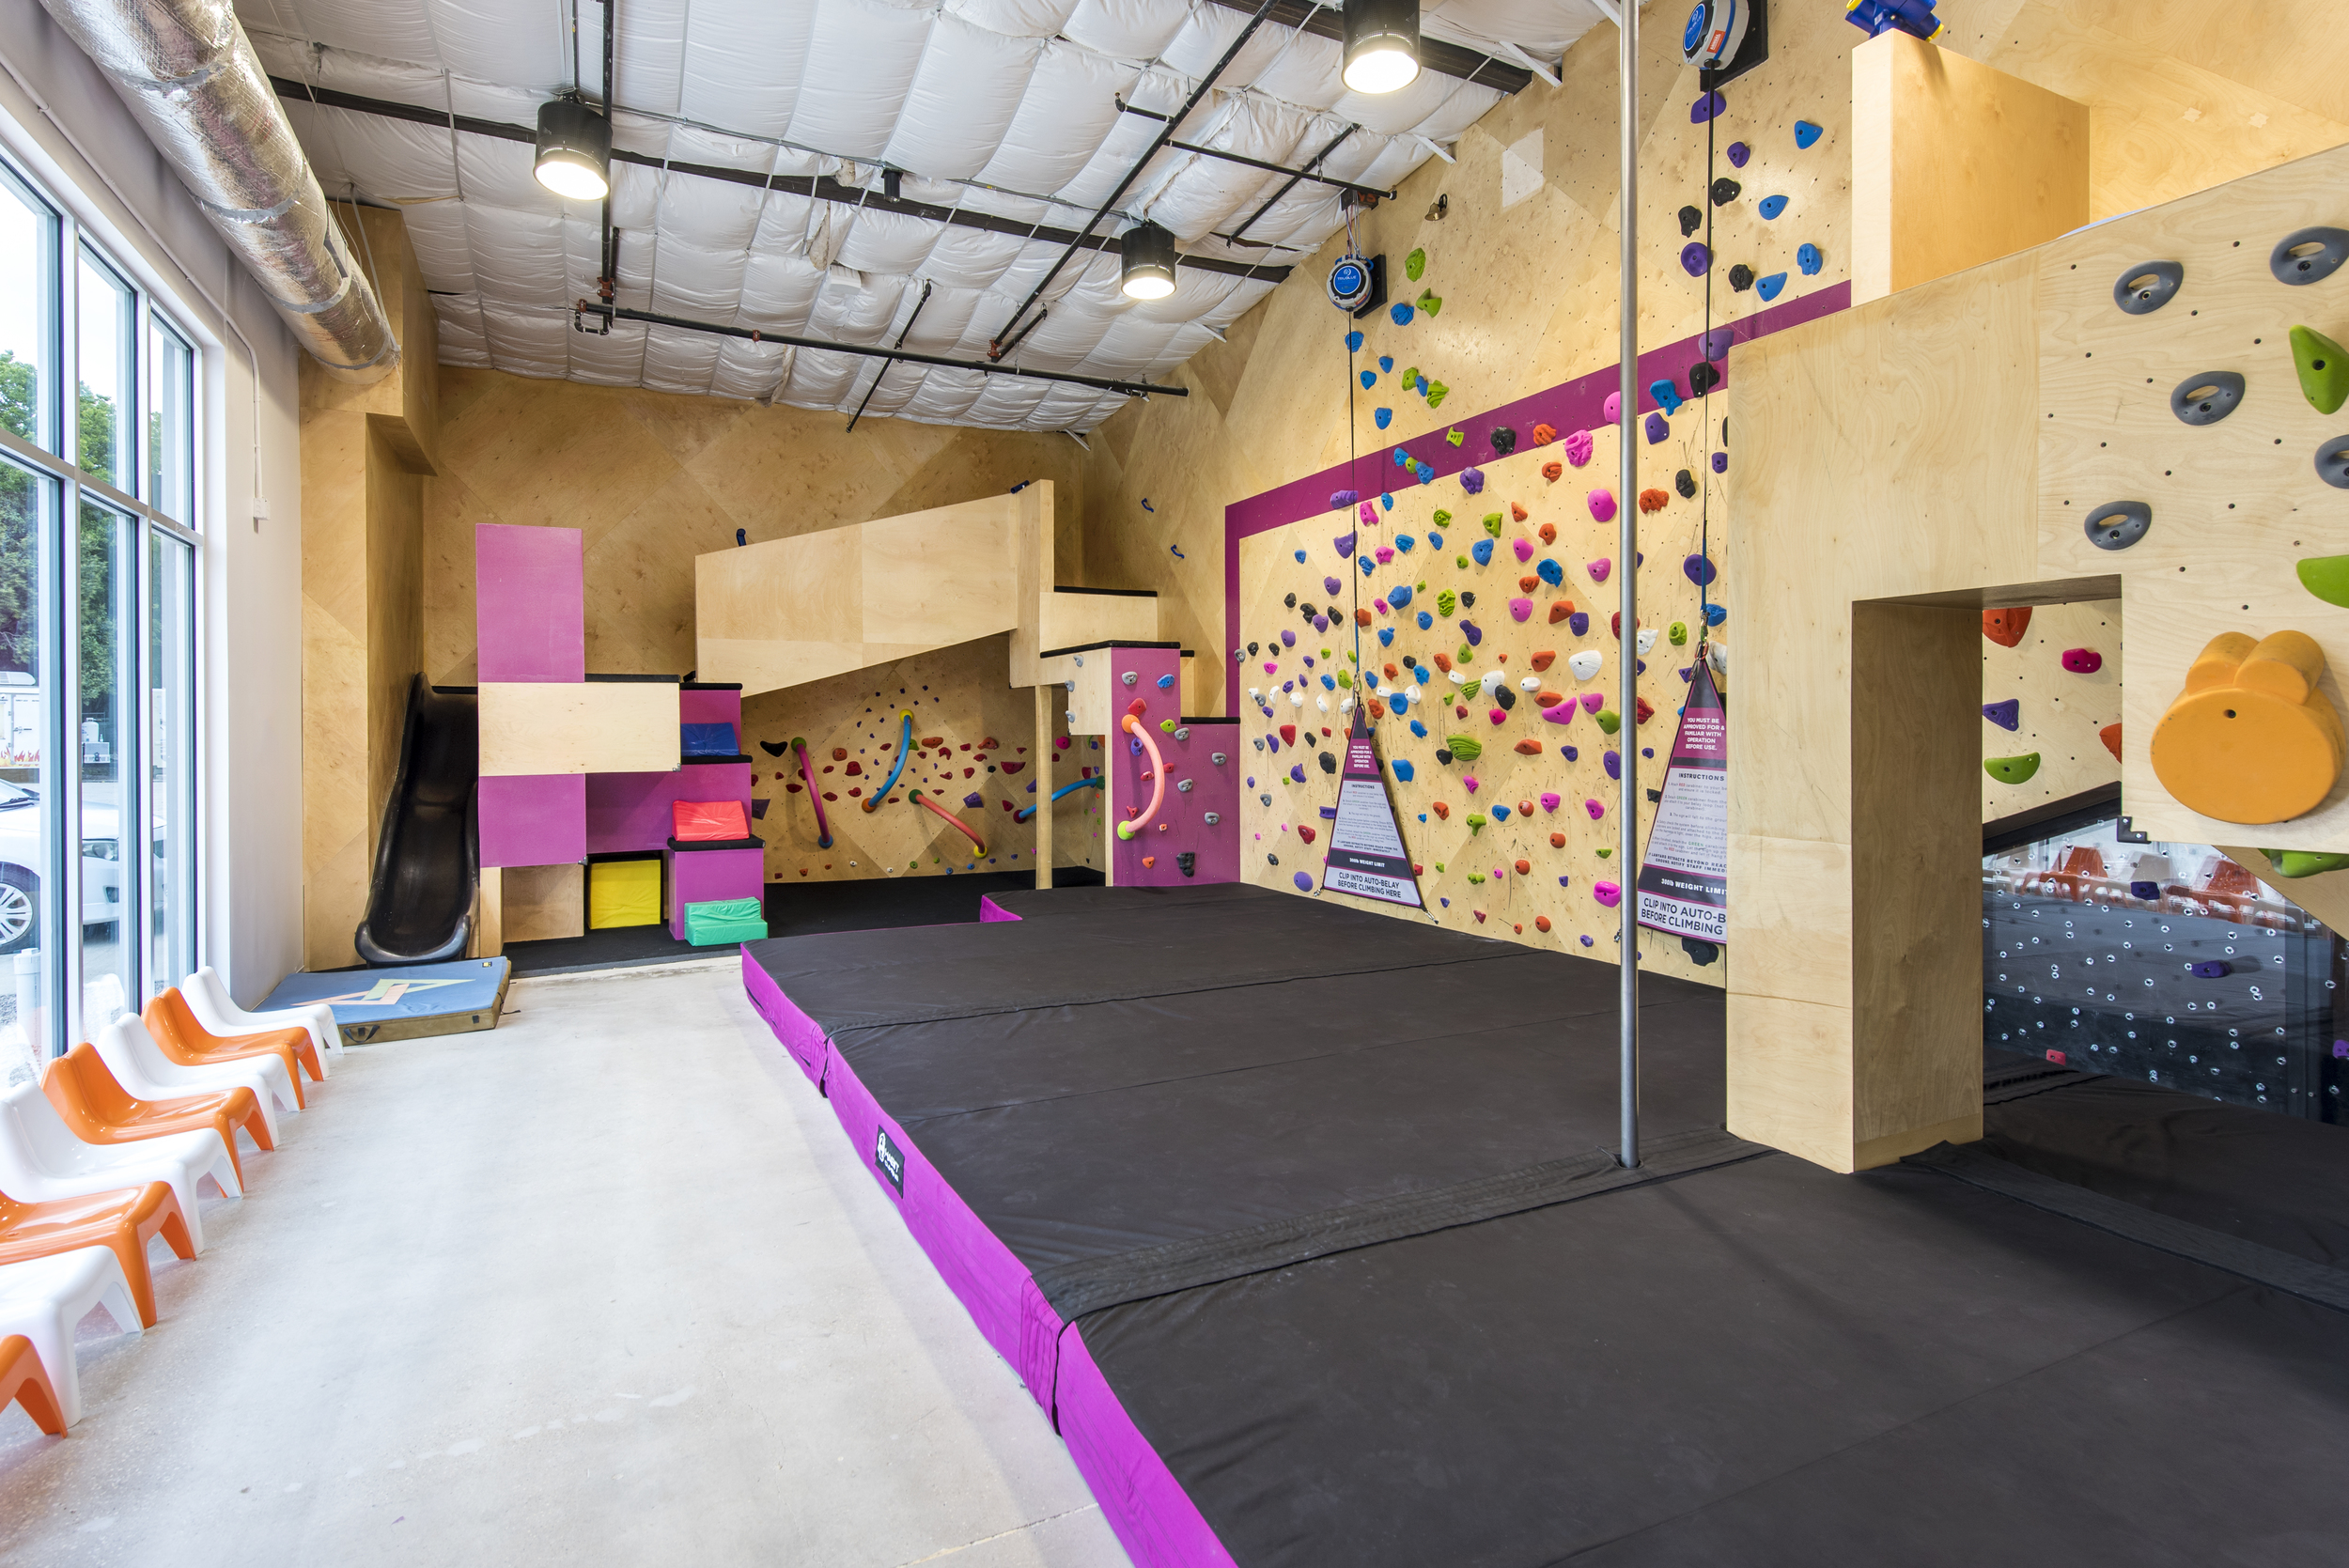 Designed for climbers 12 and under, the Panda-monium Room is a fantastic option for kids' birthdays and other events. Outfitted with a slide, fireman's pole, and of course a climbing wall, this room can keep even the most energetic, inquisitive kids entertained for hours on end. We have two auto-belays set-up in this room.